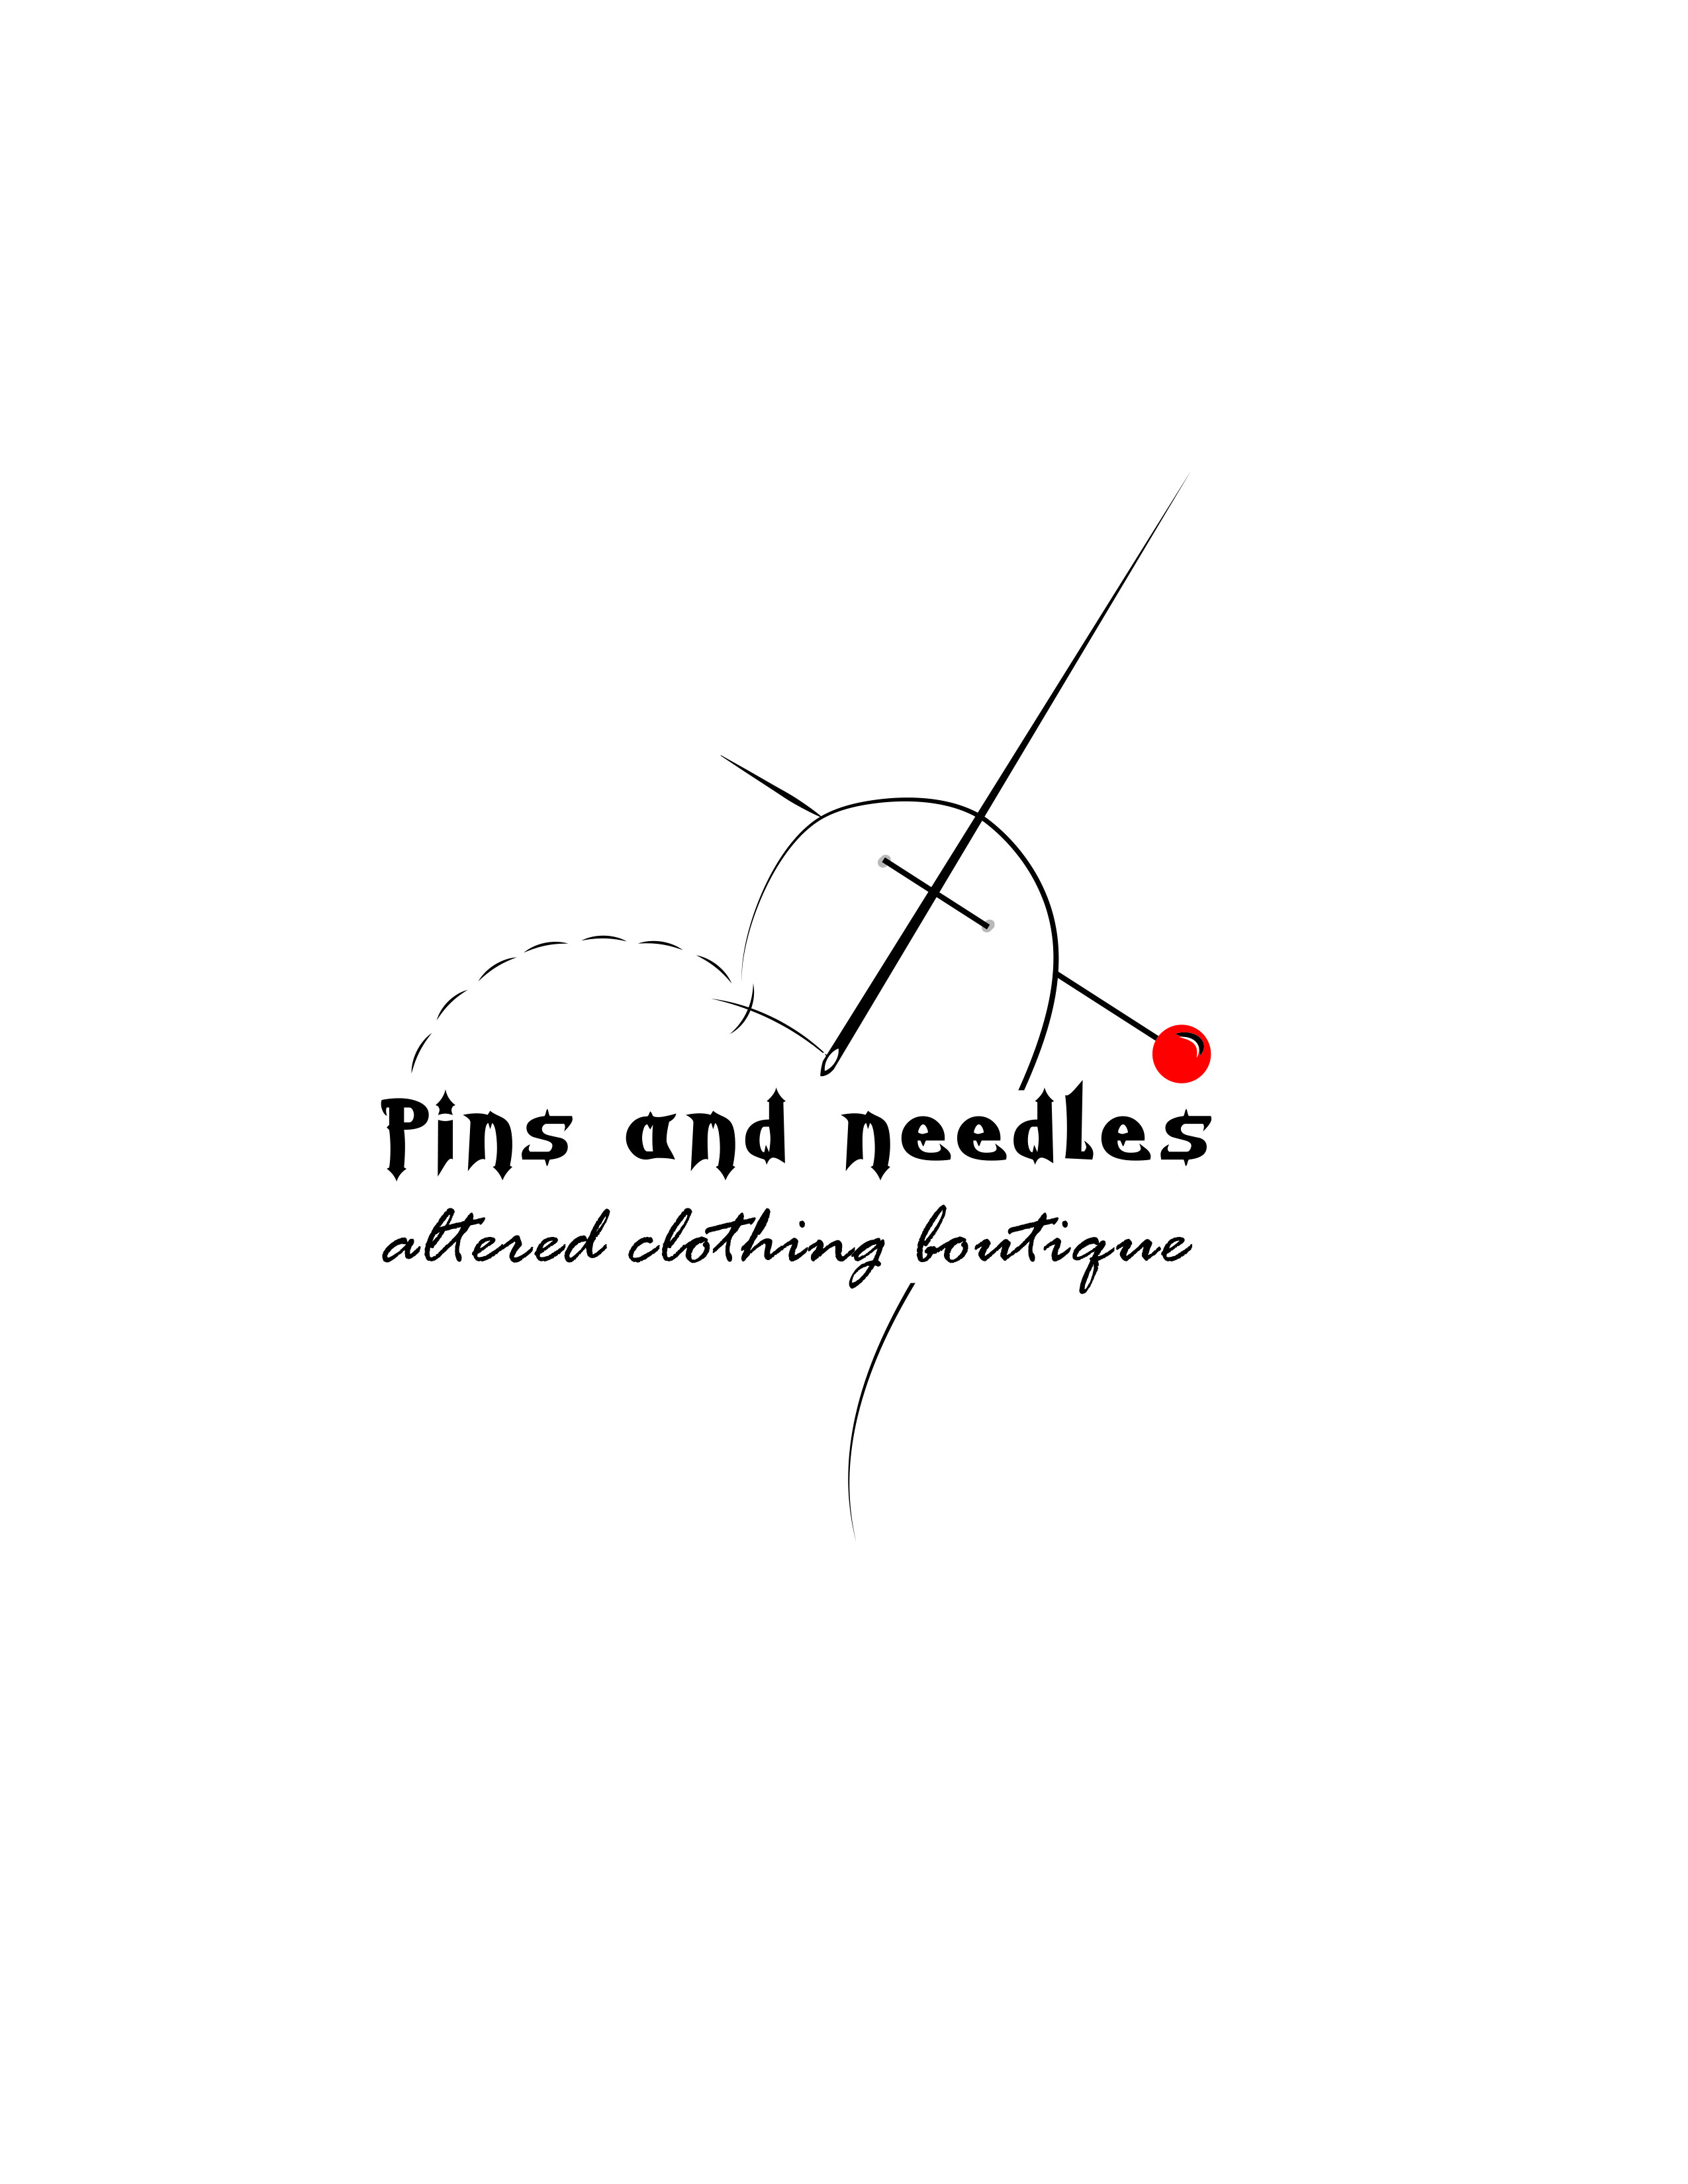 pins_and_needles2